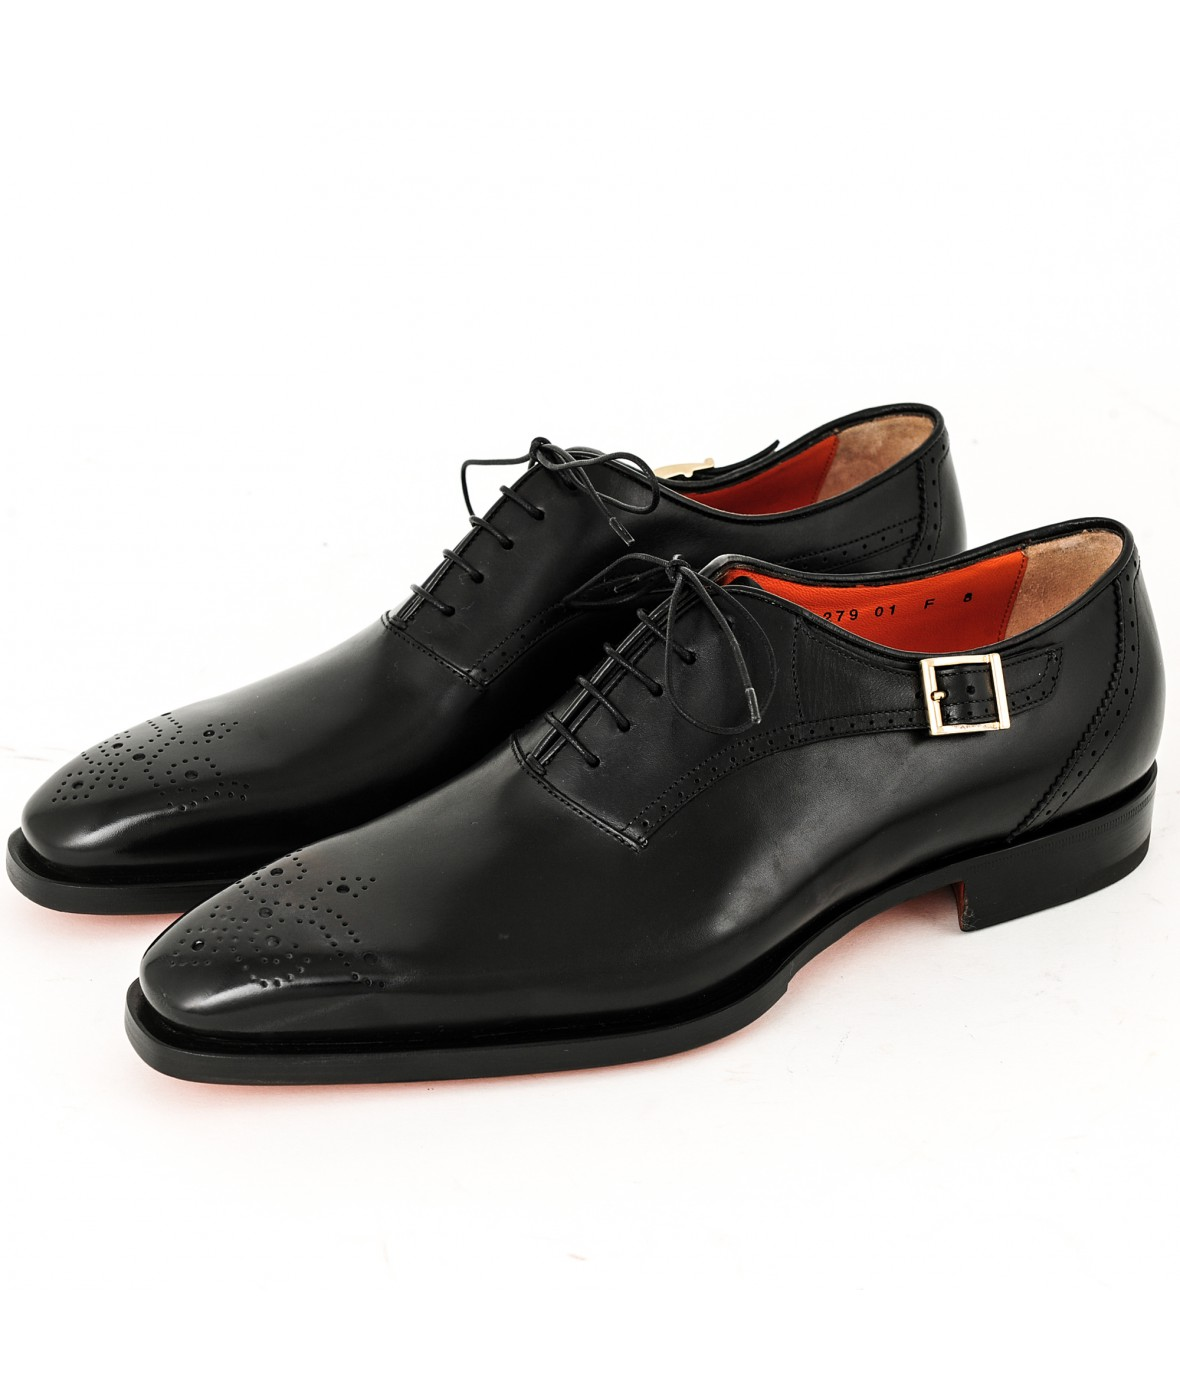 Santoni Black Night (29677)